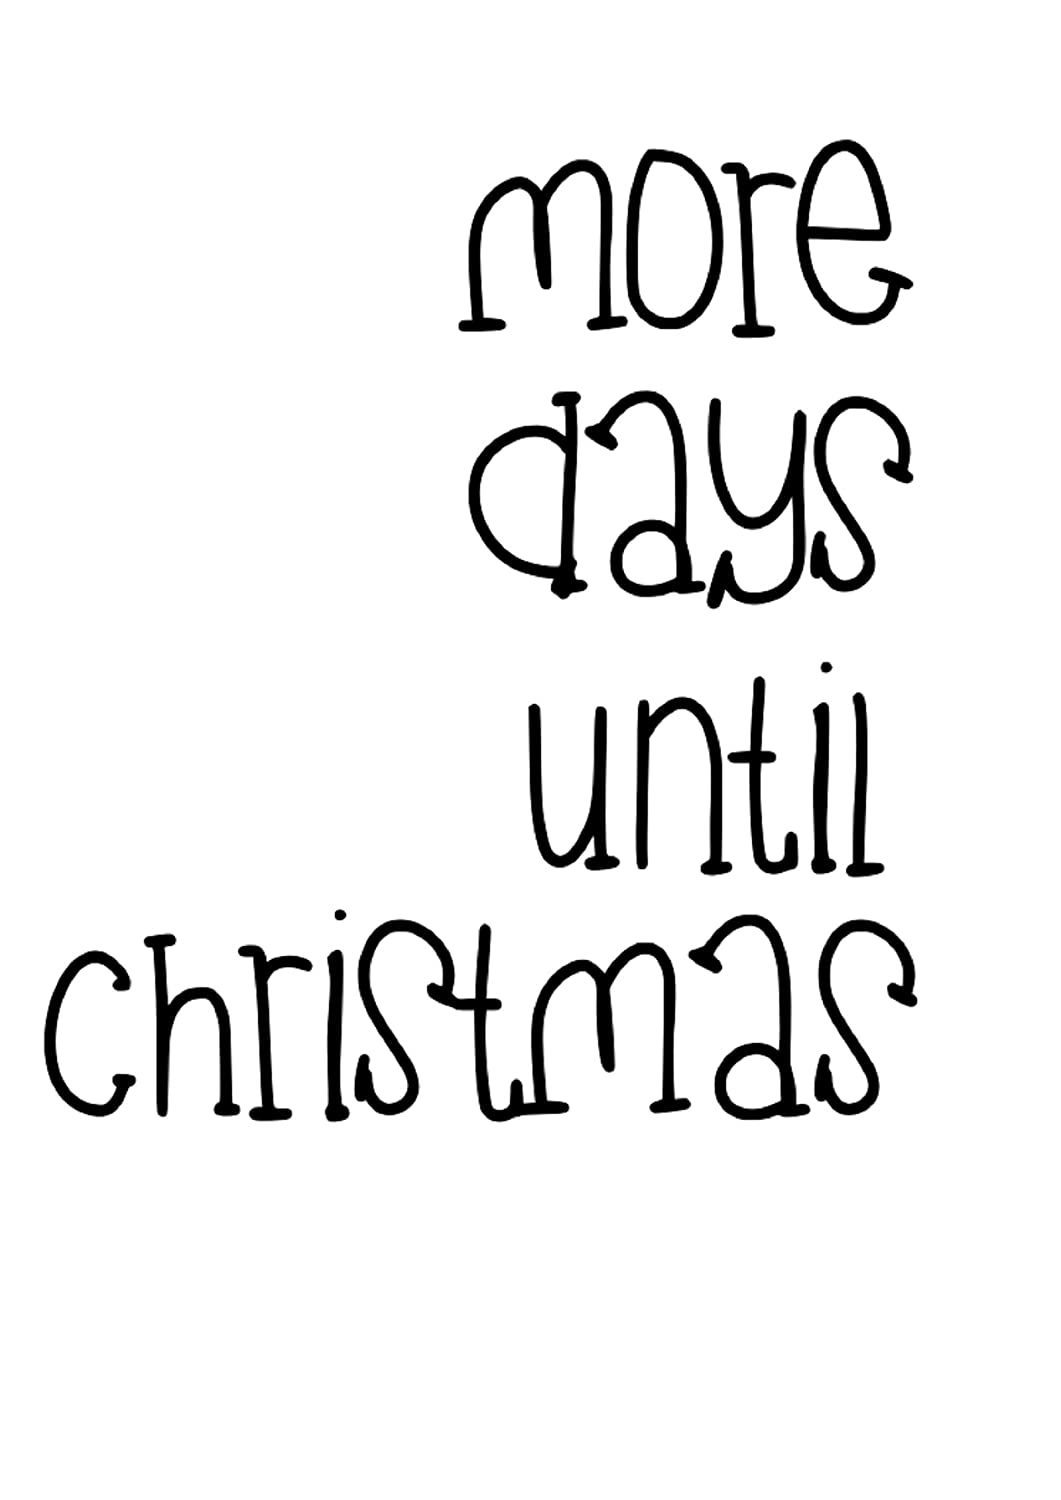 How Many More Days Until Christmas.Amazon Com More Days Until Christmas Wall Art Decal 11 W X